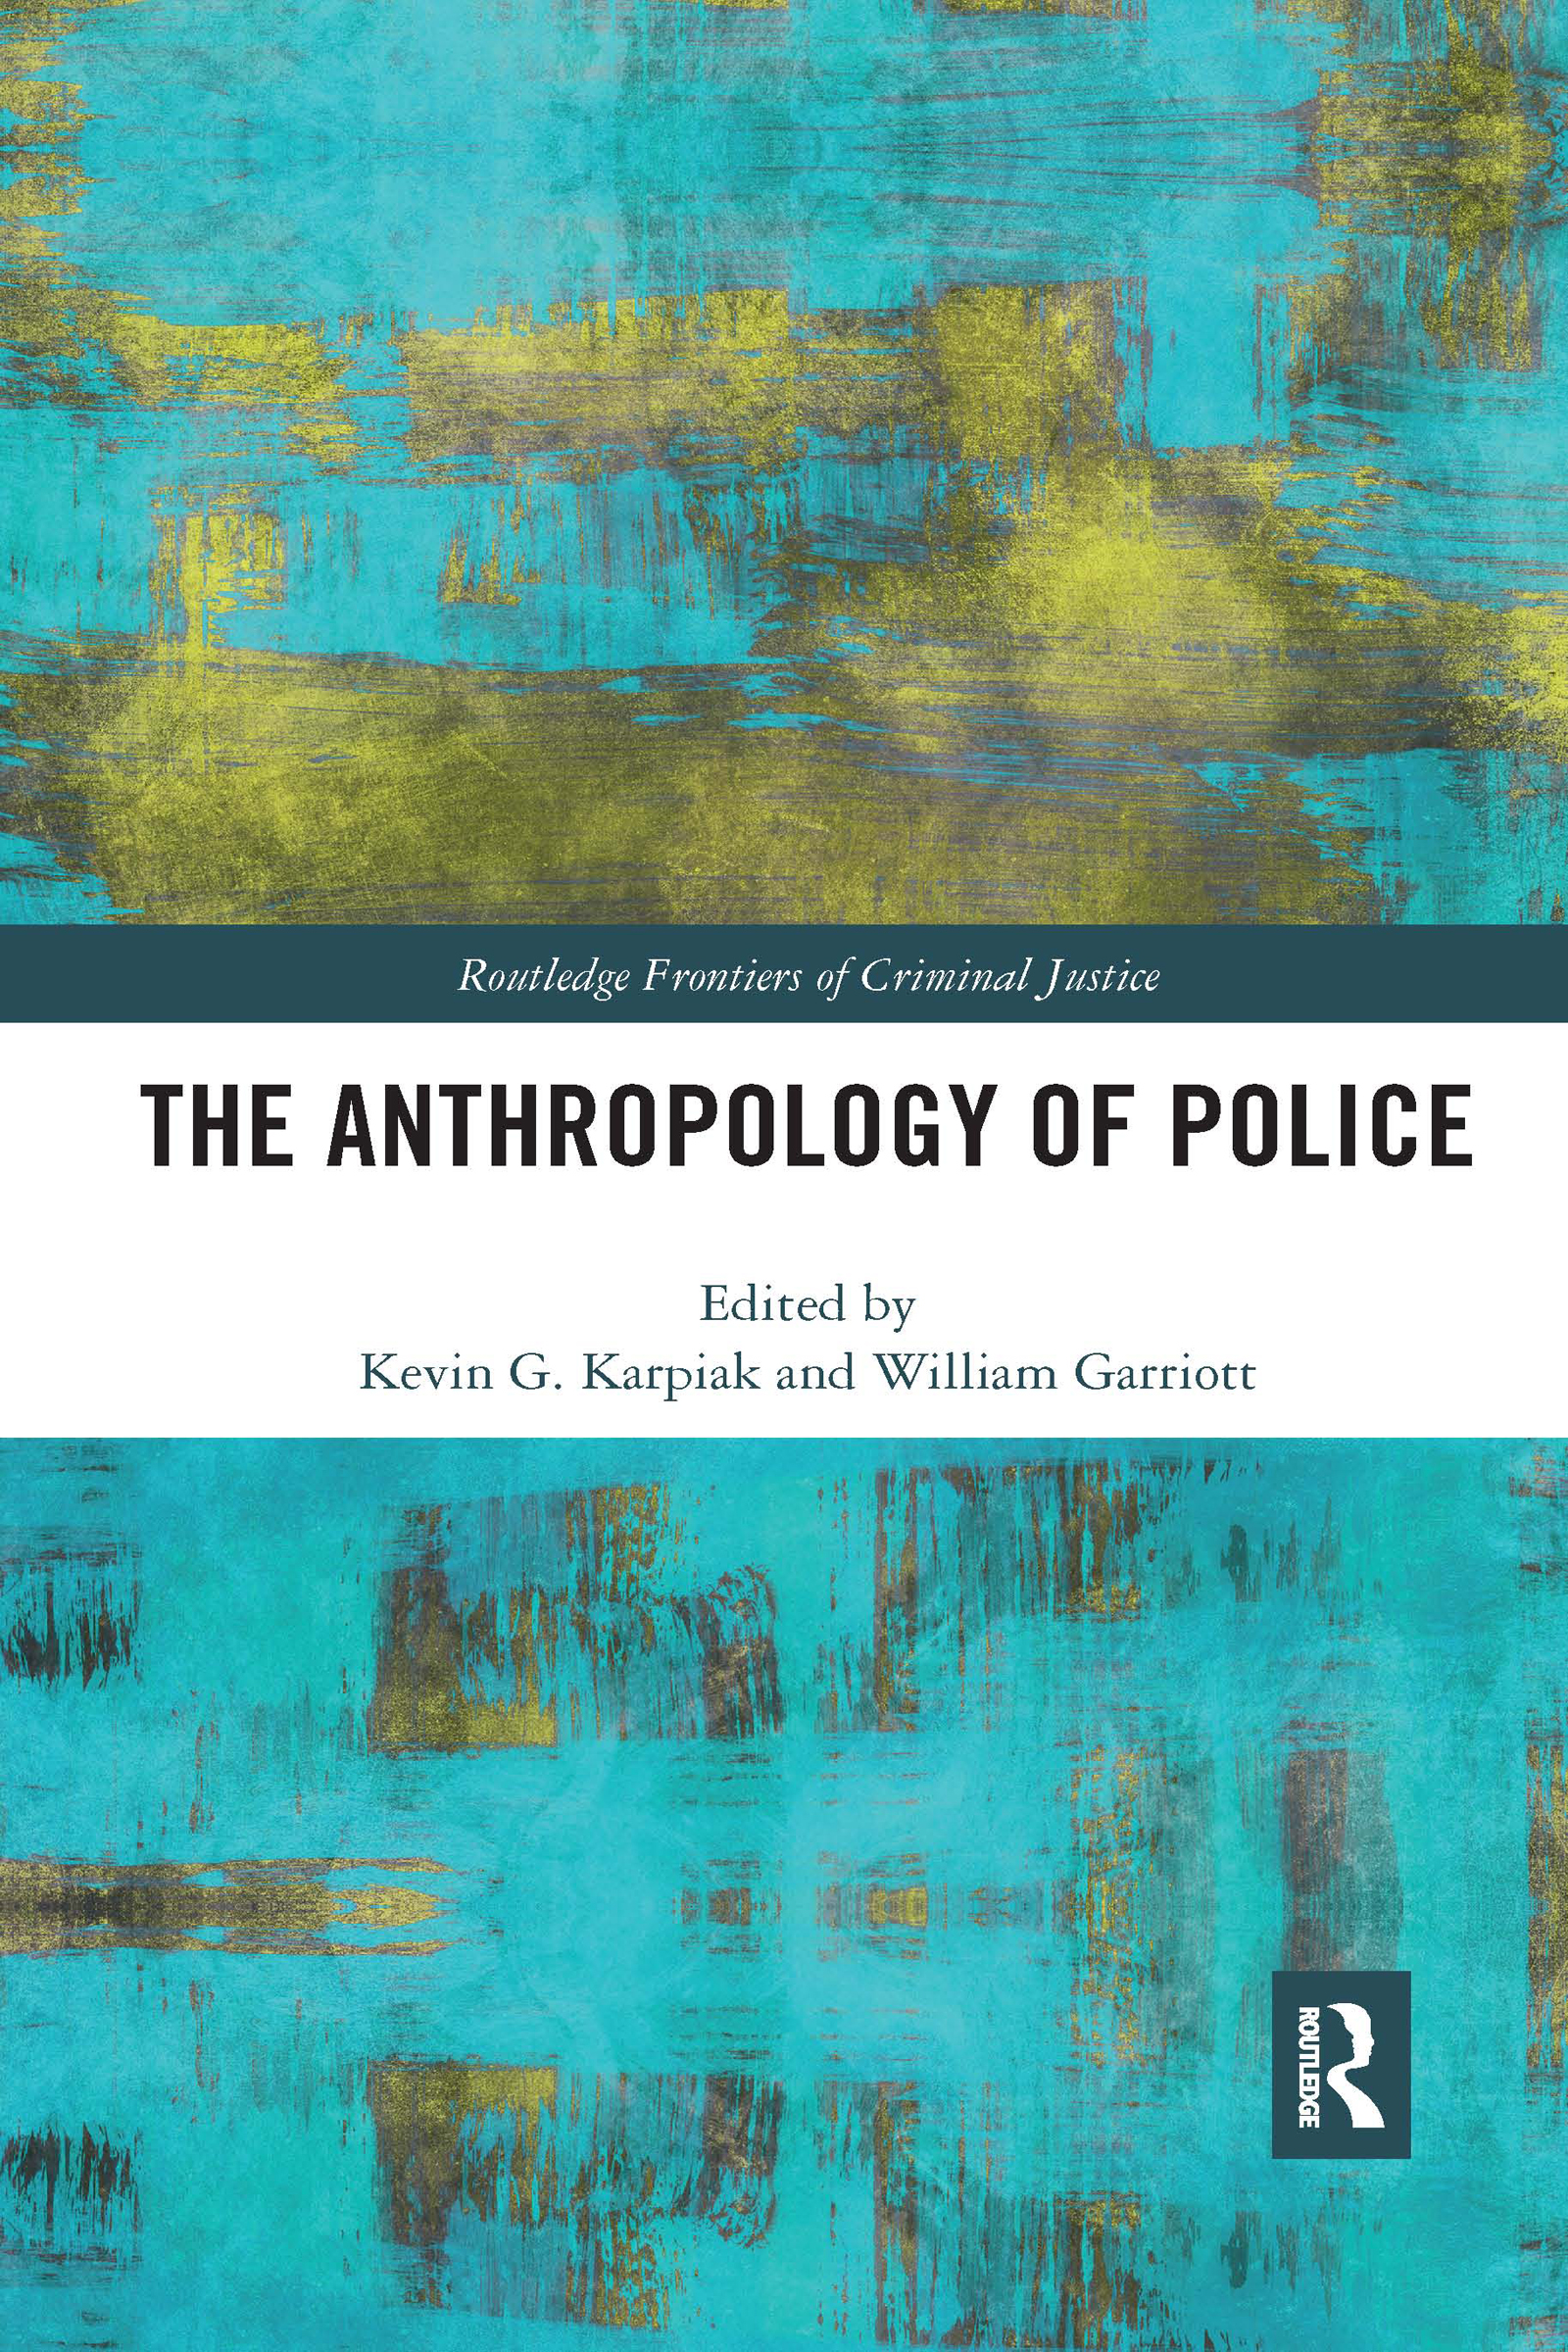 The Anthropology of Police